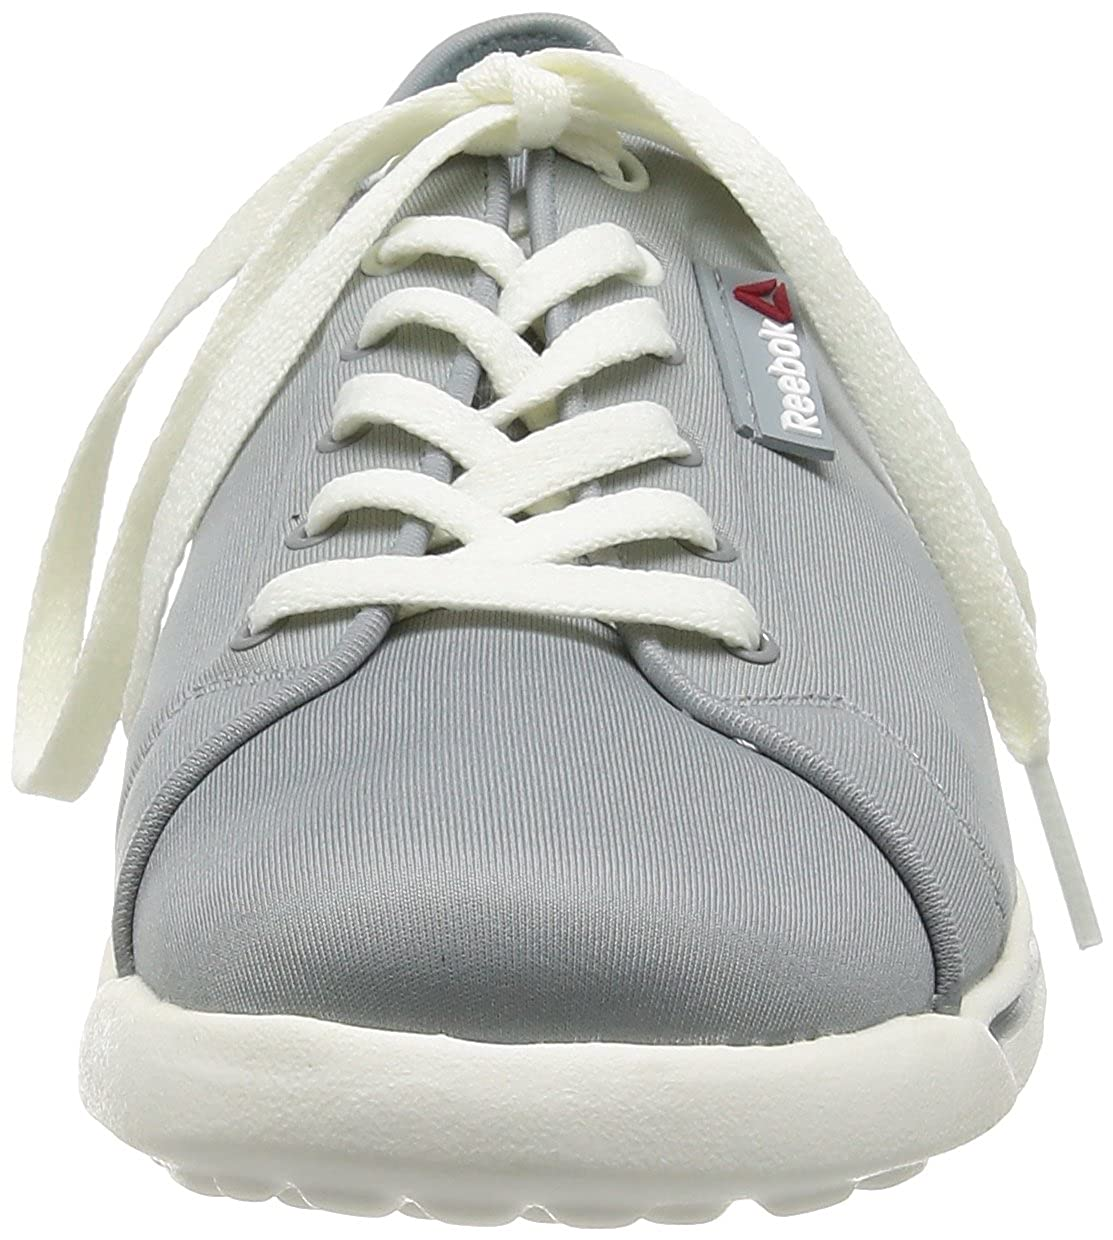 c64045b61c2f Reebok Skyscape Forever Grey Womens Walking Shoes   Trainers Size UK 3   Amazon.co.uk  Shoes   Bags